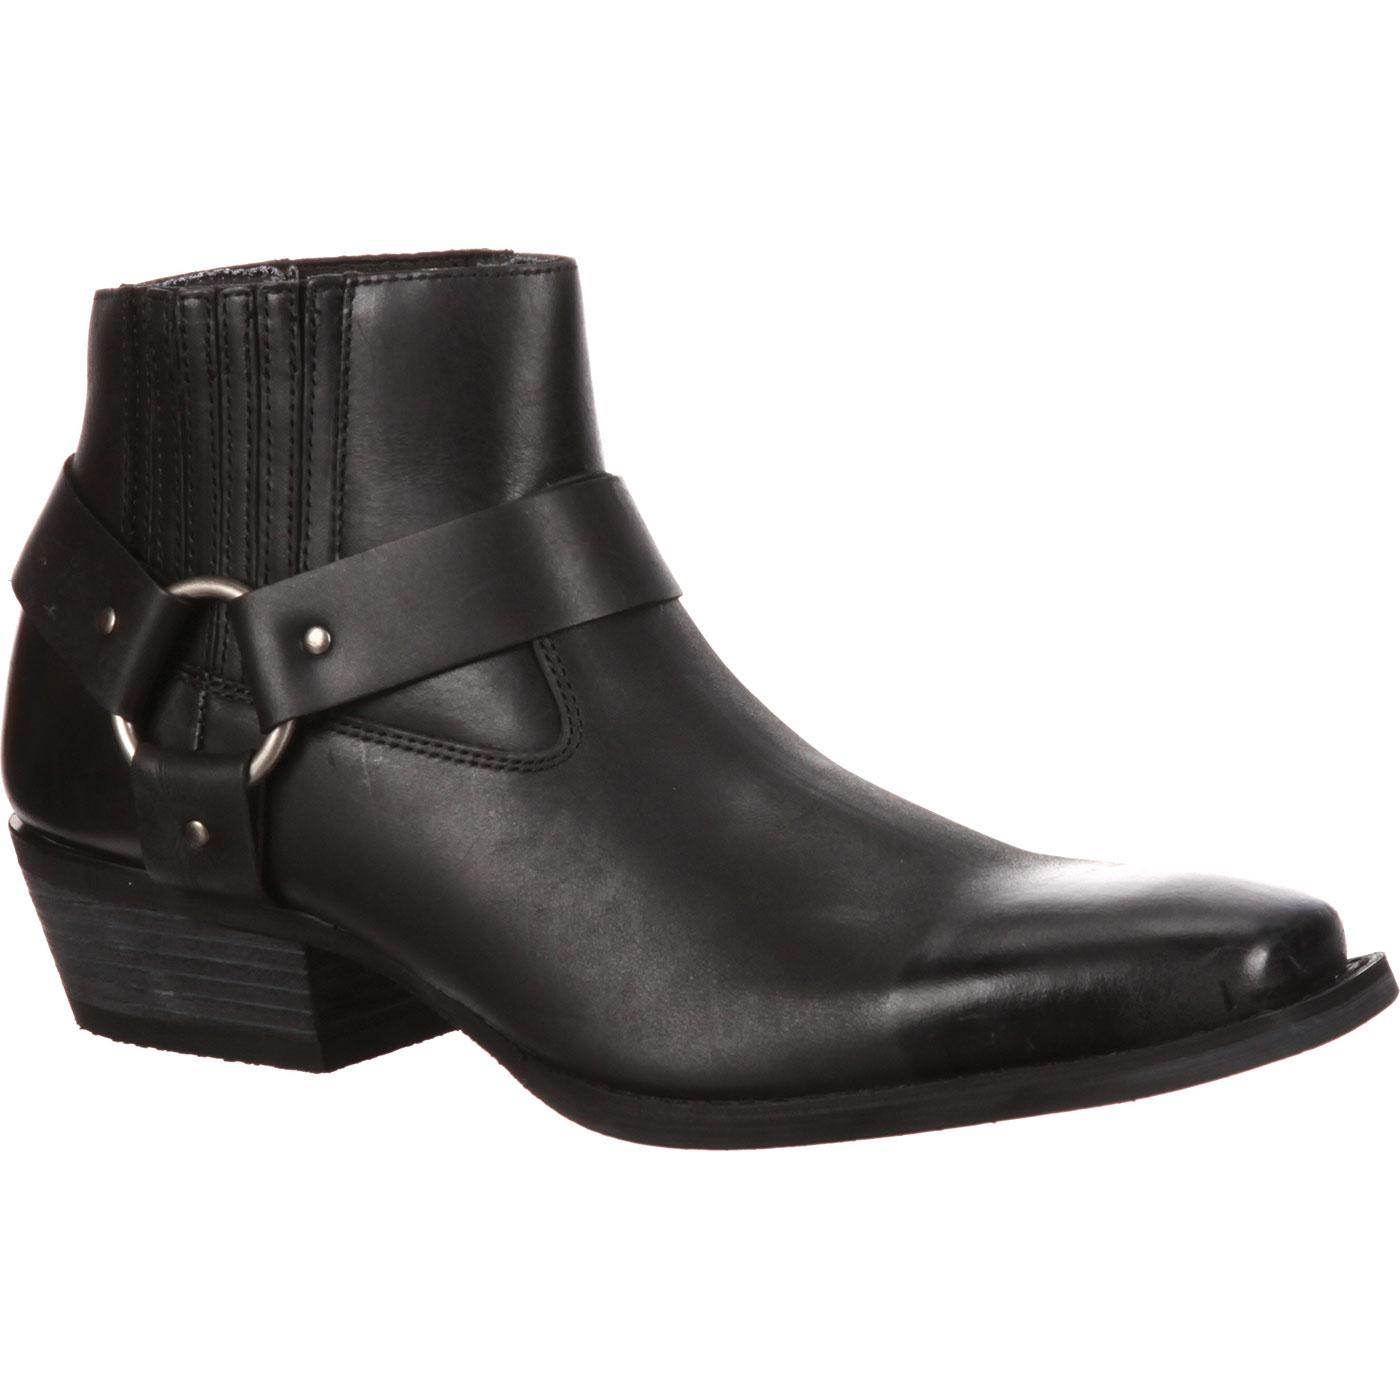 Durango Men's Black Harness Boot, #DCDB026